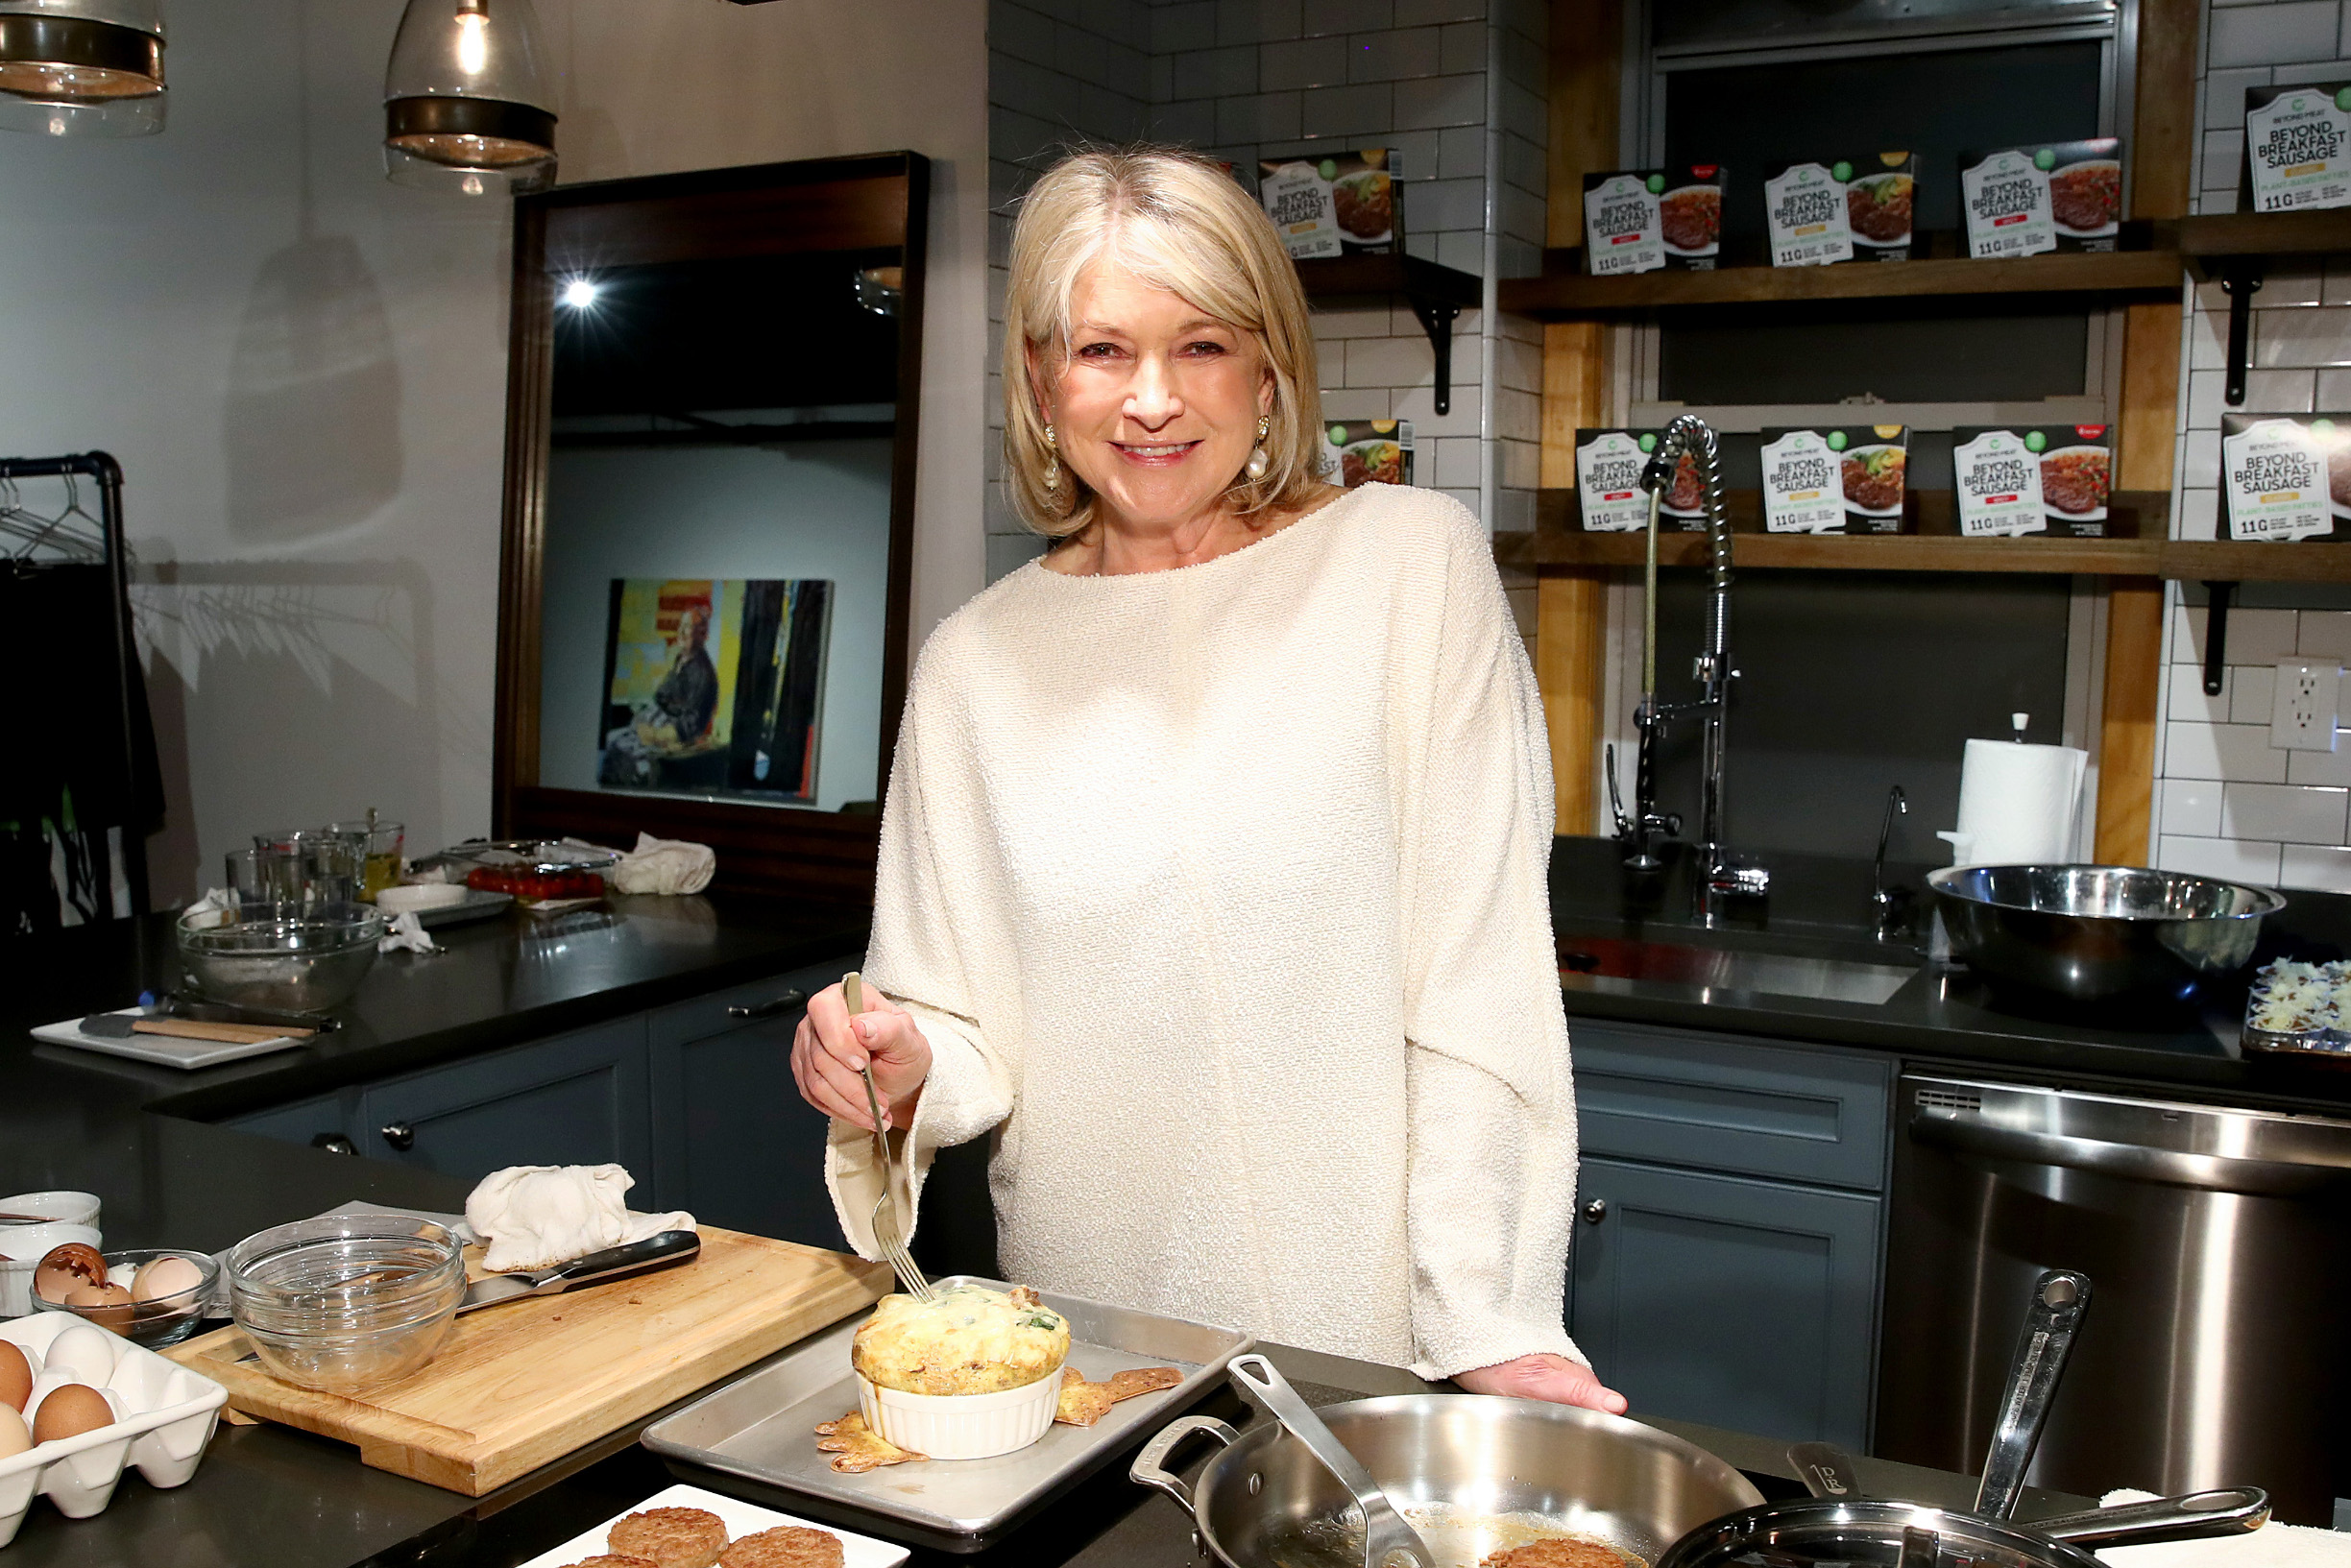 NEW YORK, NEW YORK - MARCH 10: Martha Stewart prepares the Classic Beyond Breakfast Sausage with Spinach and Sweet Onion Frittata on March 10, 2020 in New York City. (Photo by Cindy Ord/Getty Images)